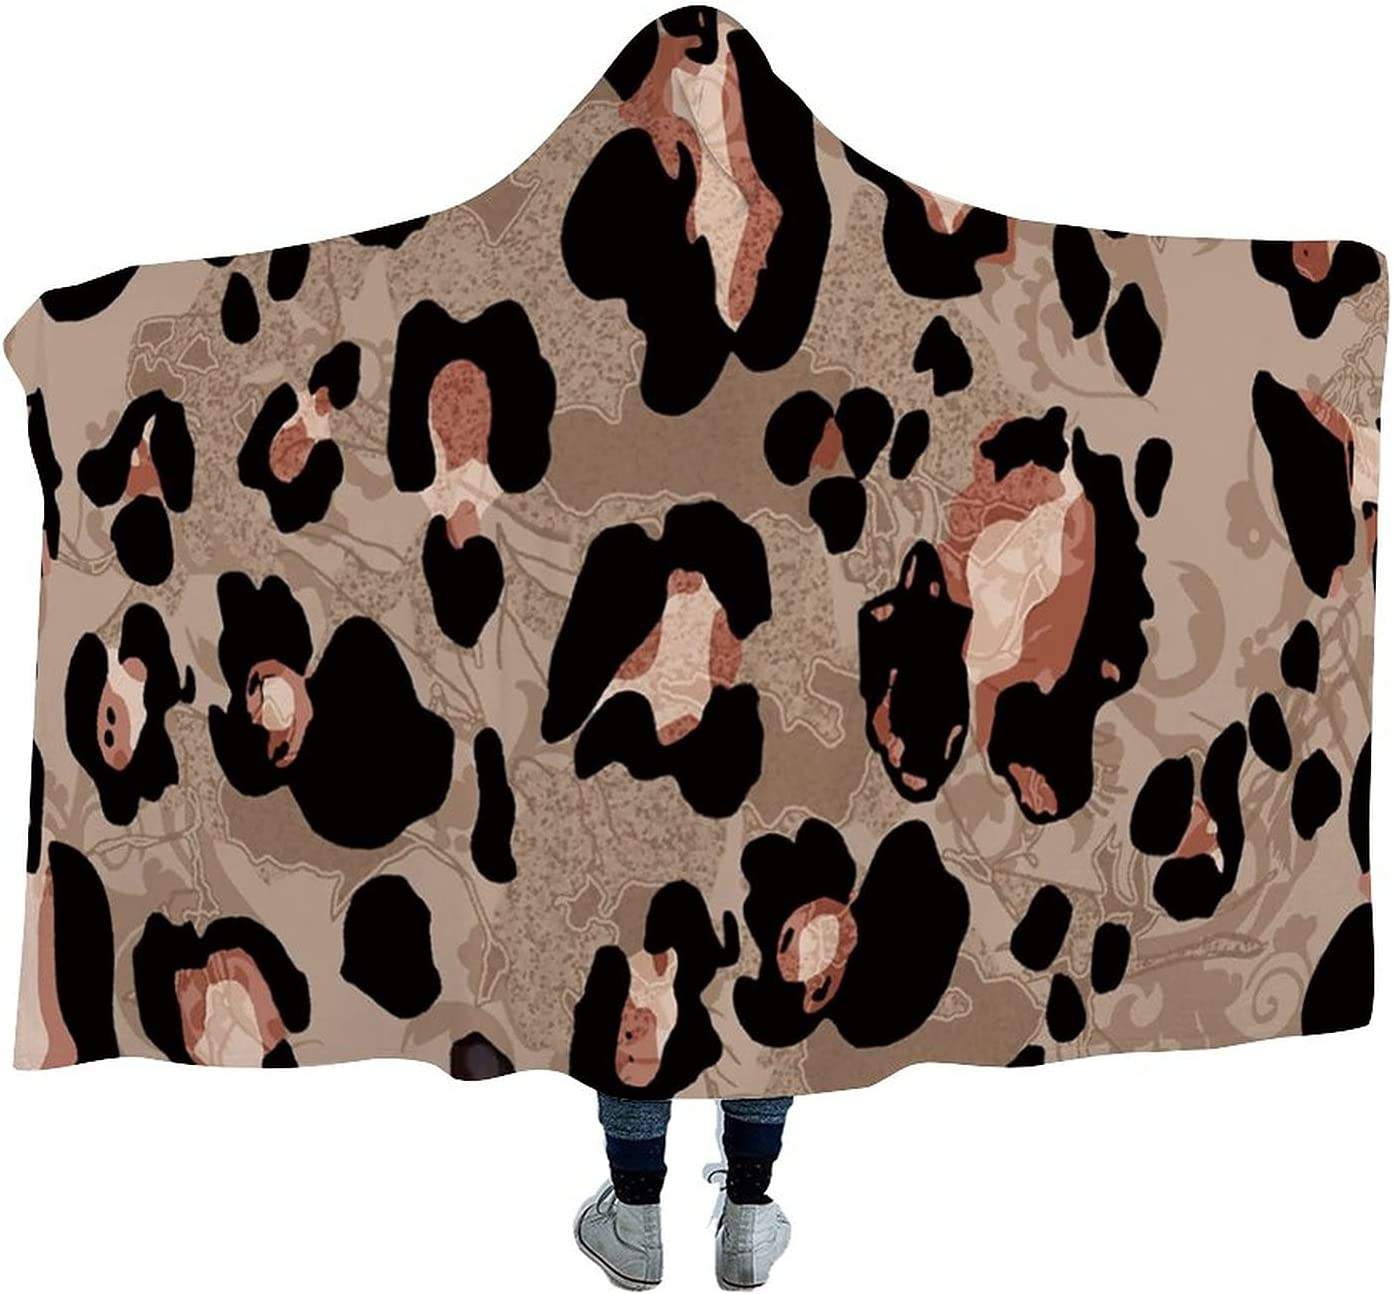 Wearable NEW Blanket 5 ☆ popular Leopard Print Brown Quil Plush Cloak Warm Throw